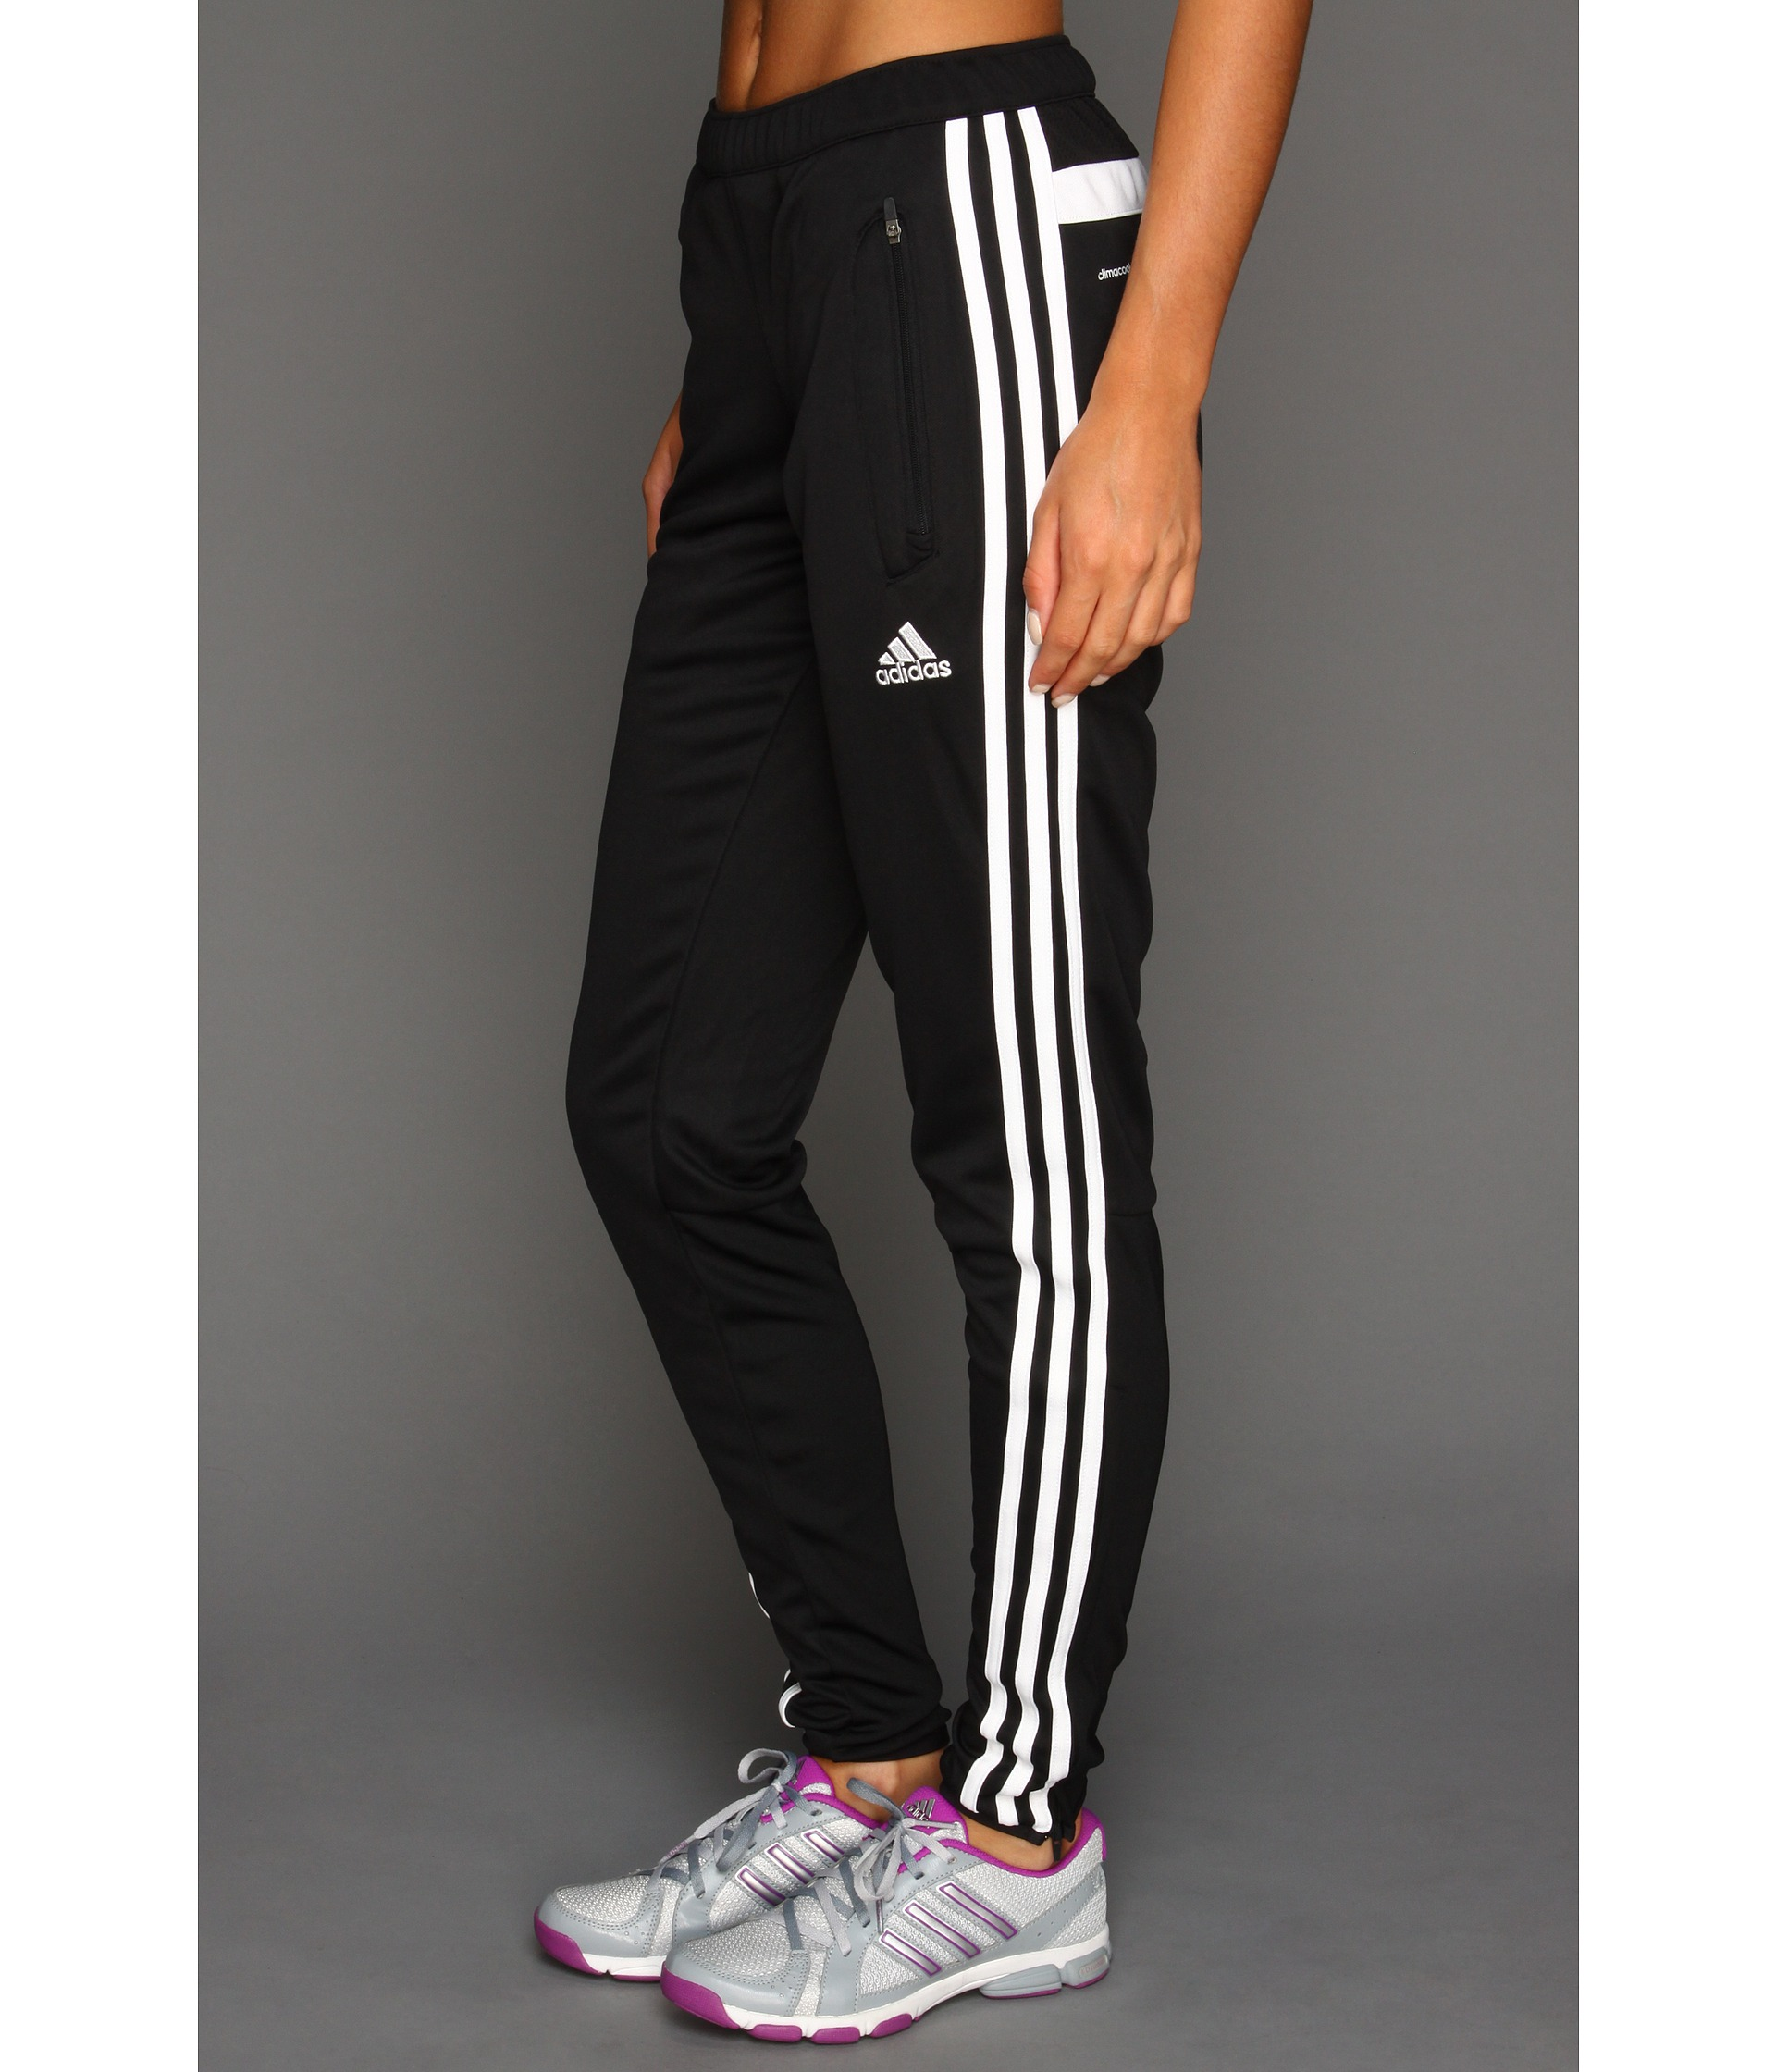 Brilliant Pants Adidas Pants Shirt Black And White Black Wedges Tumblr